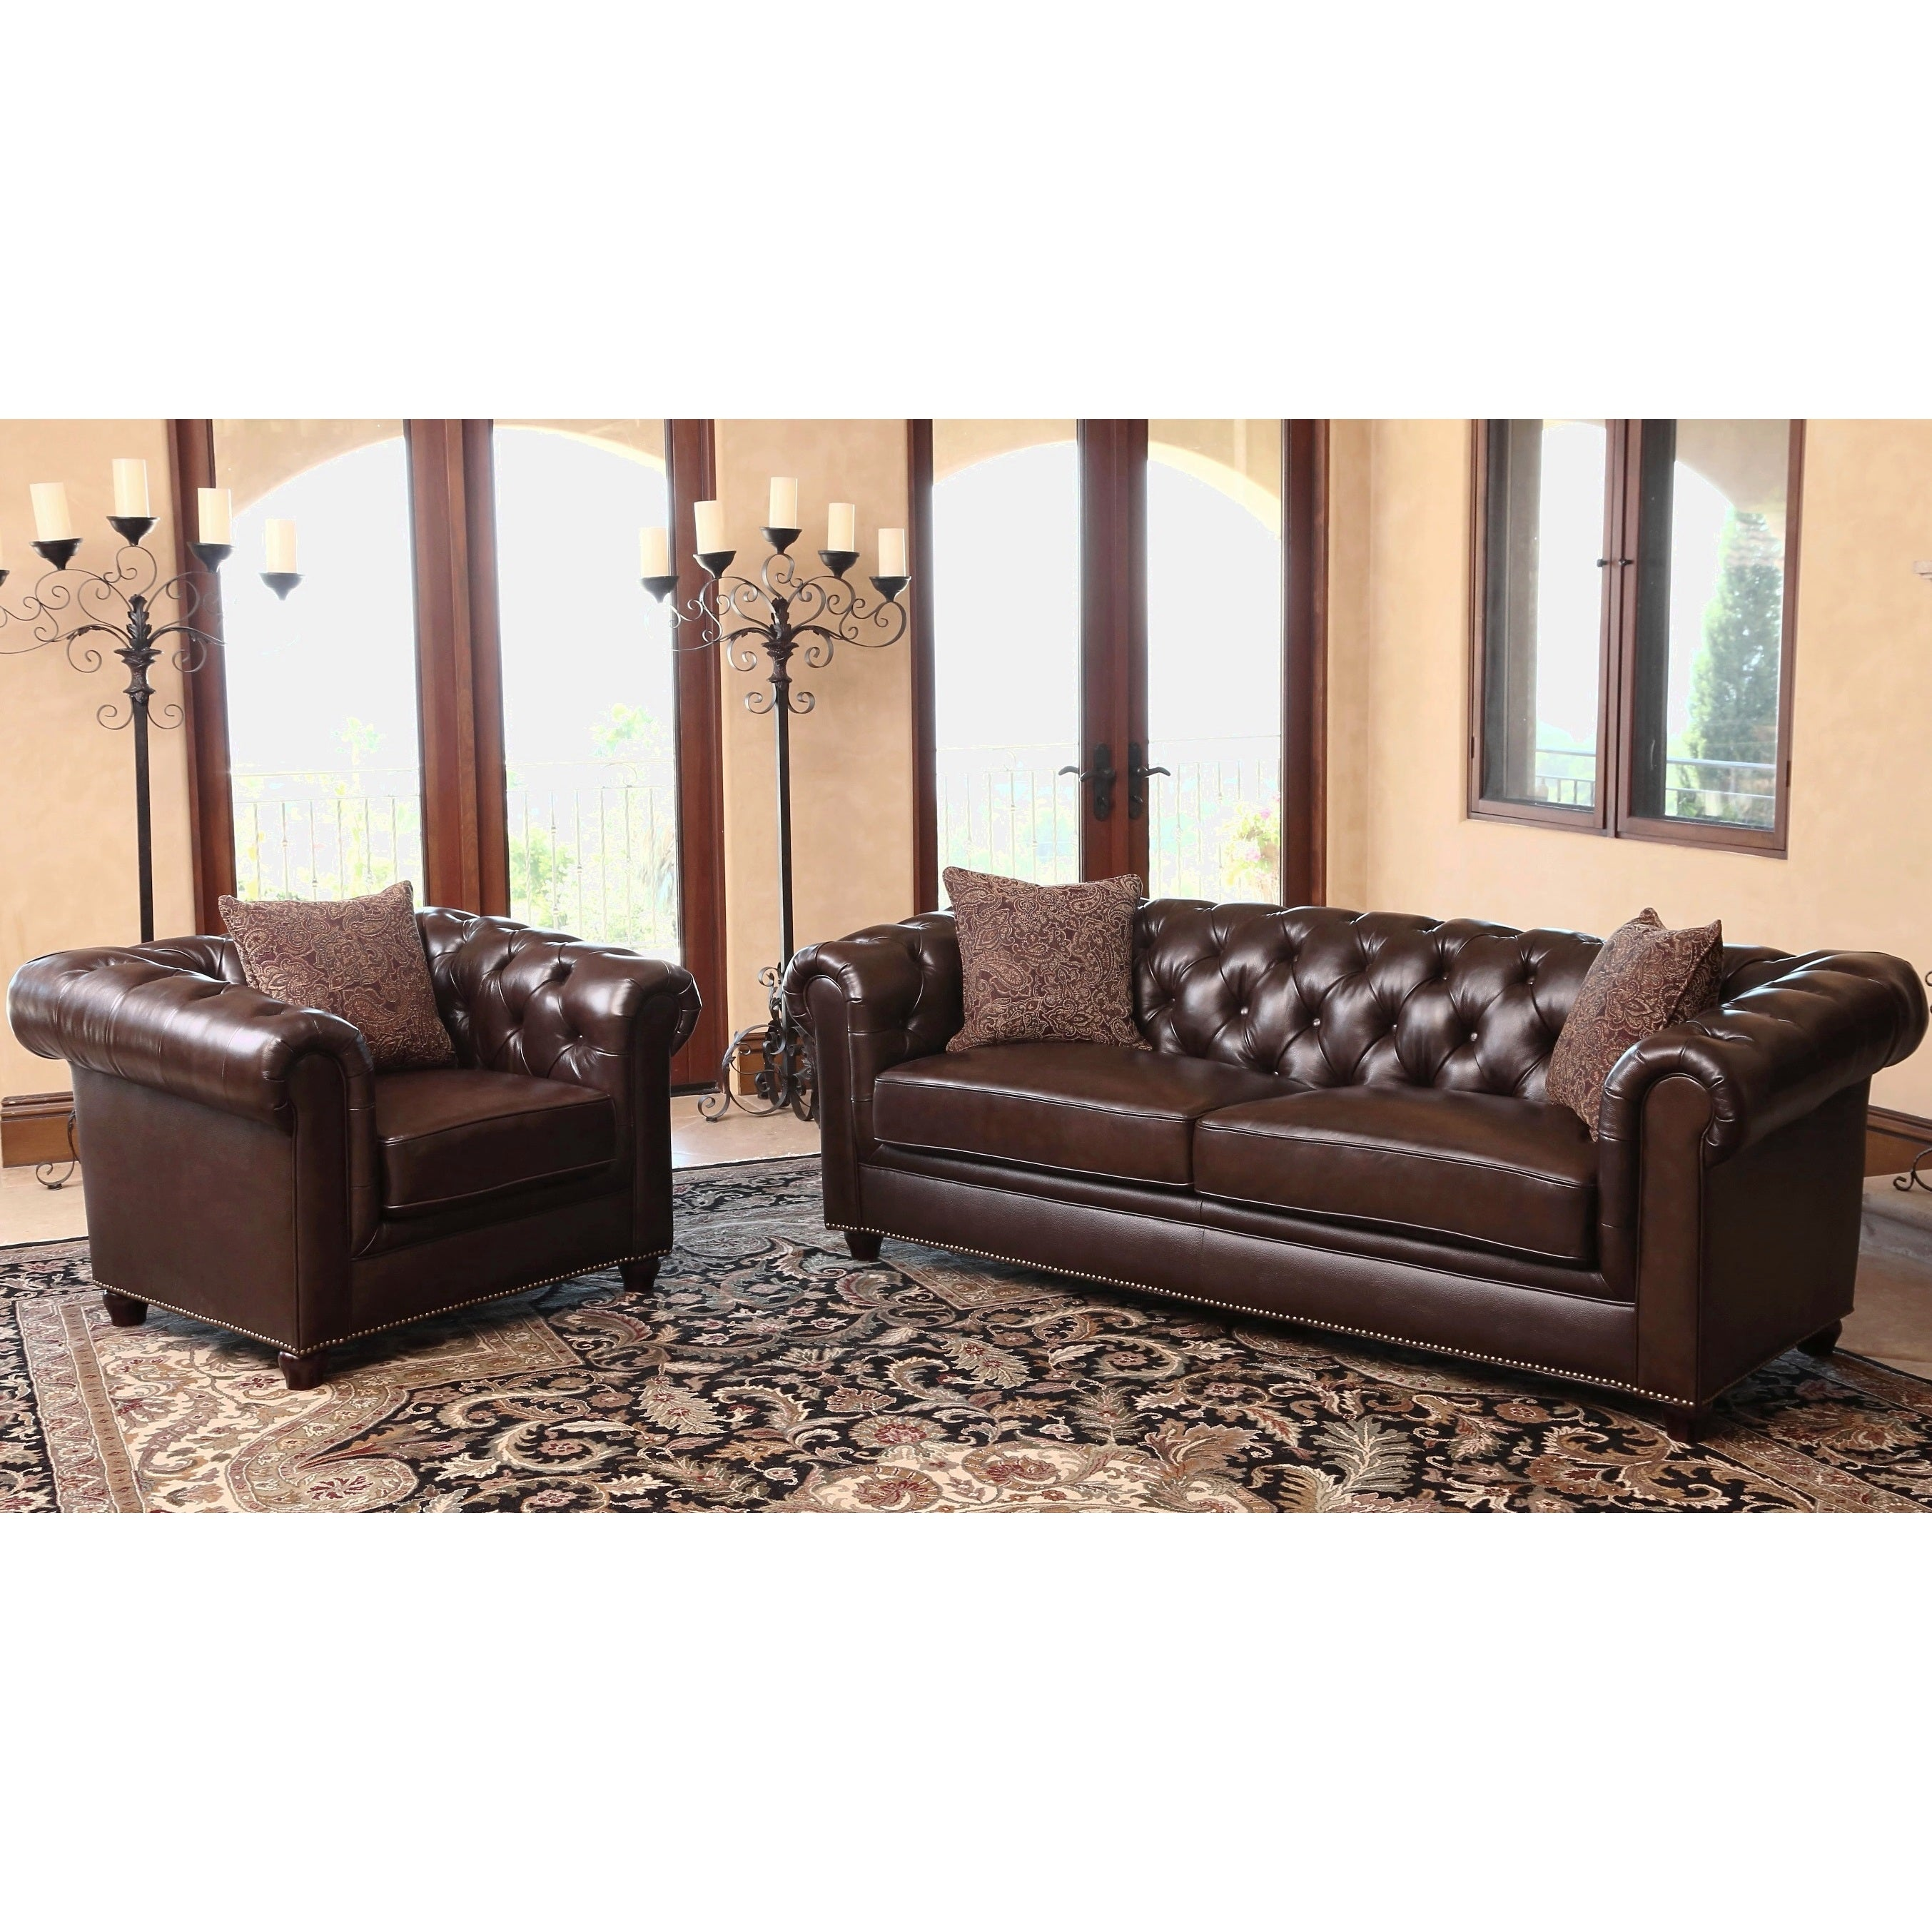 Shop Abbyson Carmela Dark Brown Top Grain Leather Chesterfield 2